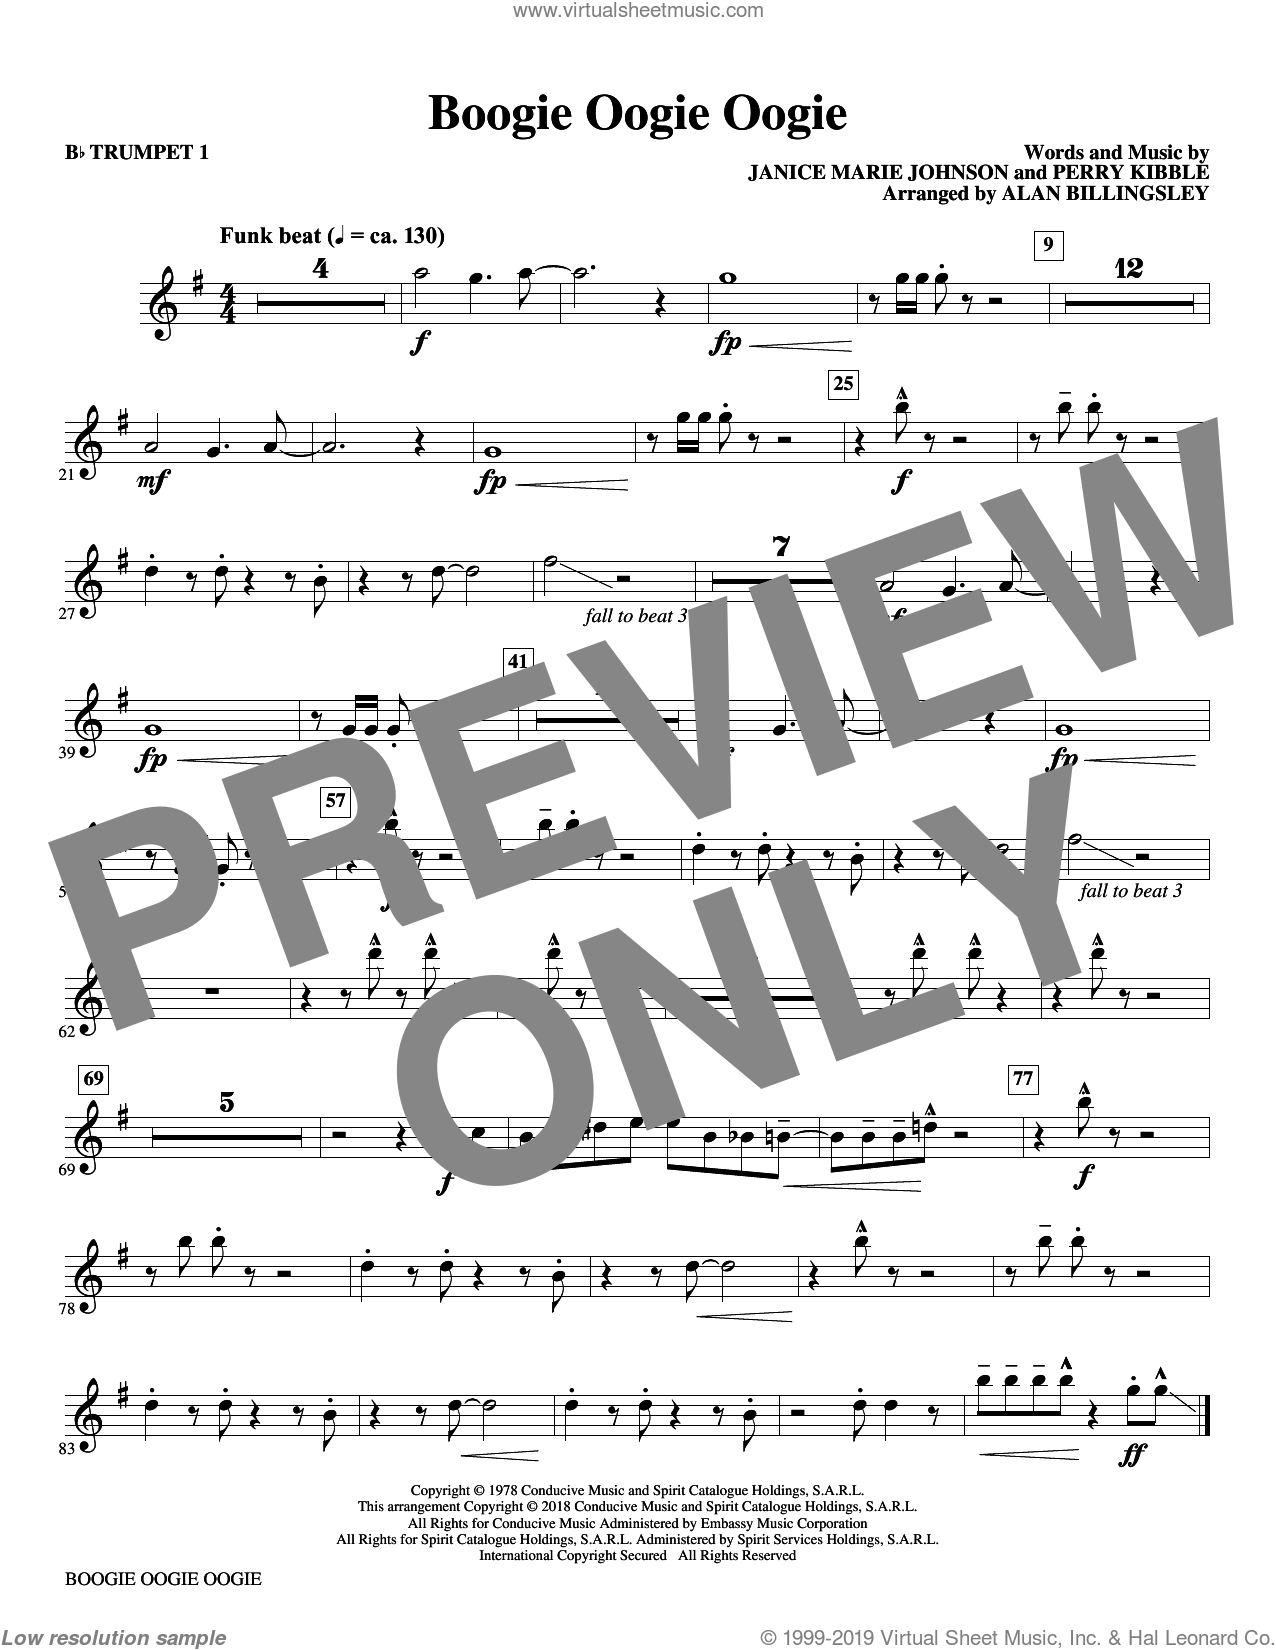 Boogie Oogie Oogie (arr. Alan Billingsley) (complete set of parts) sheet music for orchestra/band by Alan Billingsley, A Taste Of Honey, Janice Marie Johnson and Perry Kibble, intermediate skill level